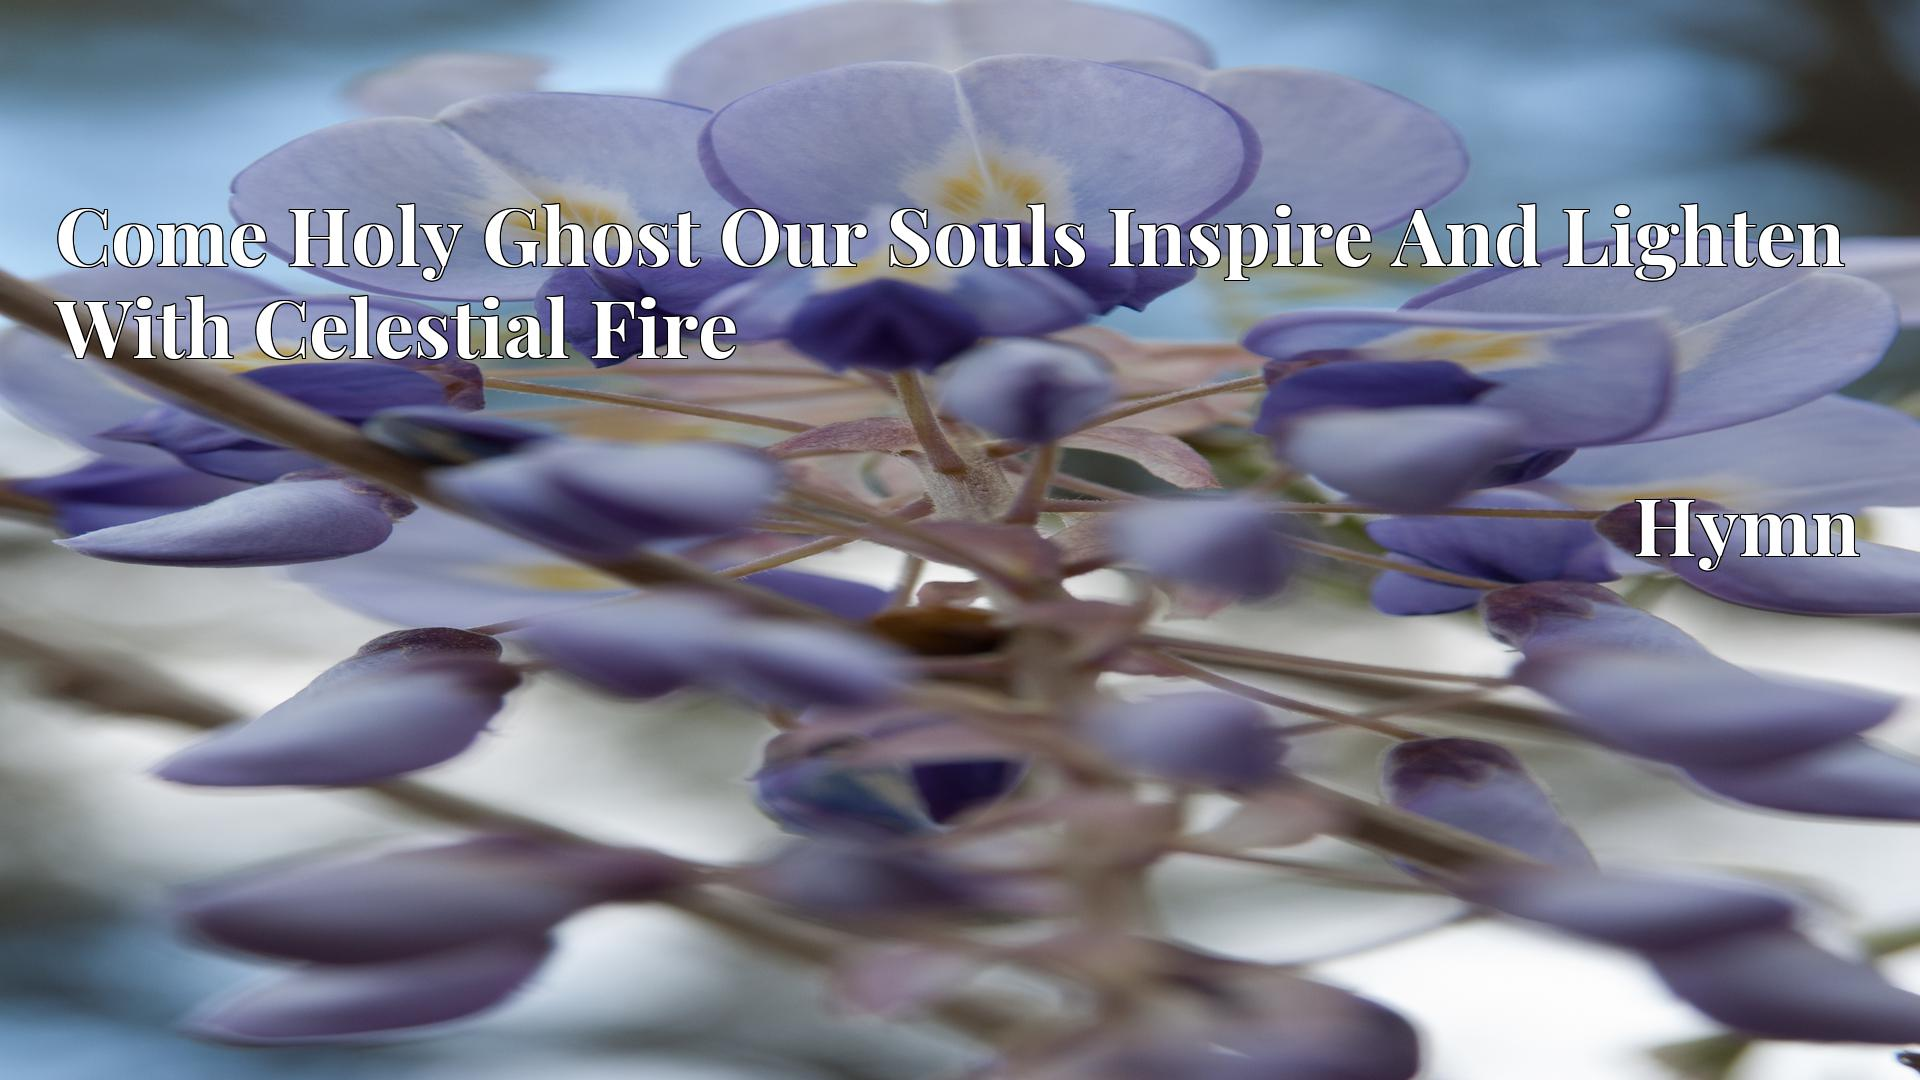 Come Holy Ghost Our Souls Inspire And Lighten With Celestial Fire - Hymn